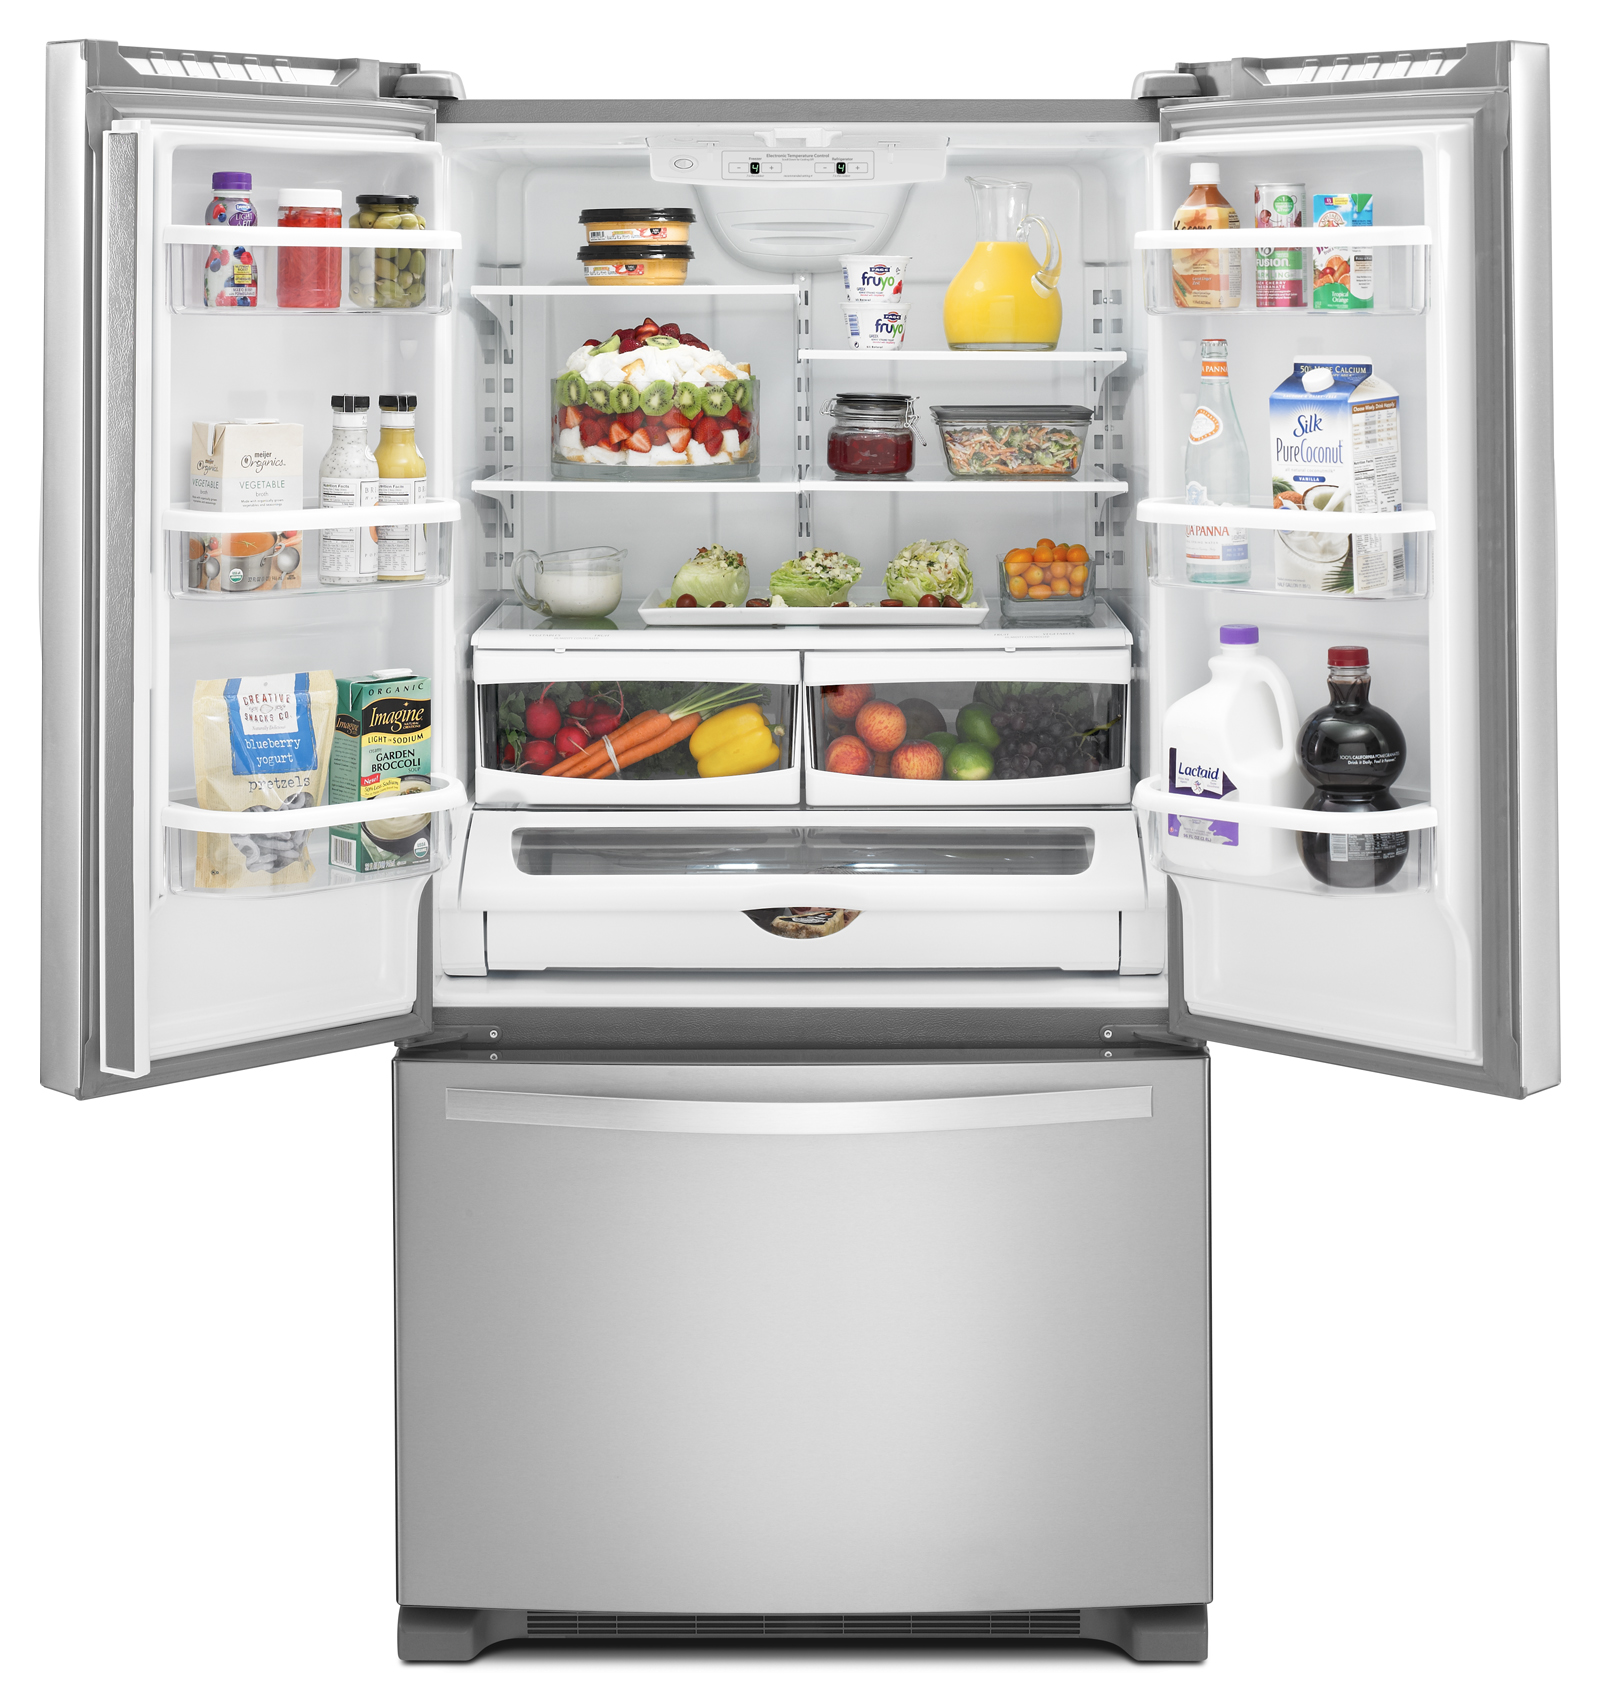 Whirlpool WRF535SMBM 25 cu. ft. French Door Refrigerator  - Stainless Steel